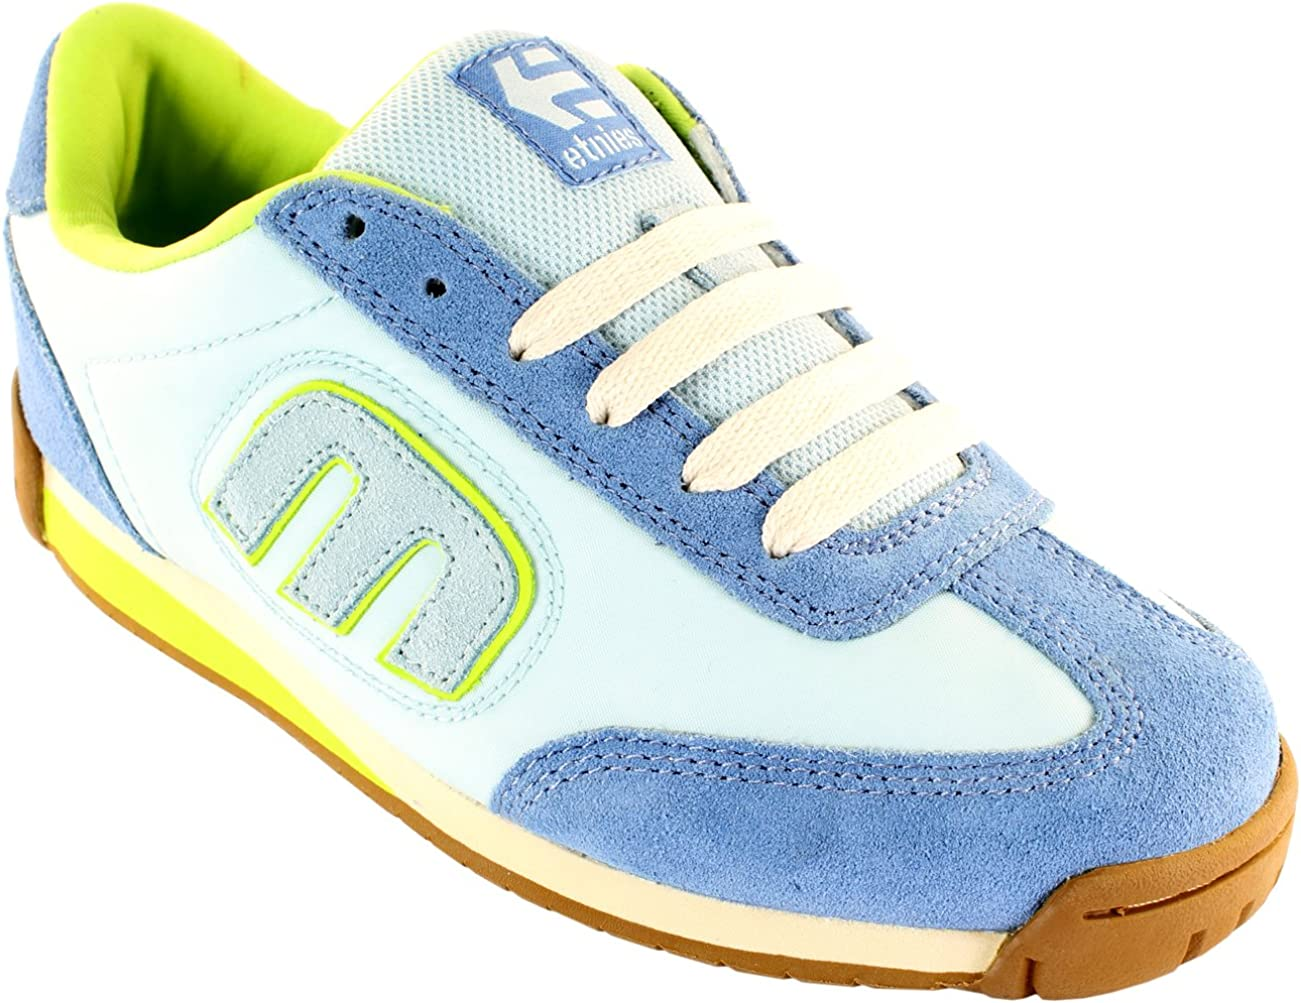 WOMENS  SNEAKERS LOW BIG STAR FASHION YELLOW BLUE SHOES TRAINERS SIZE 3-8 UK